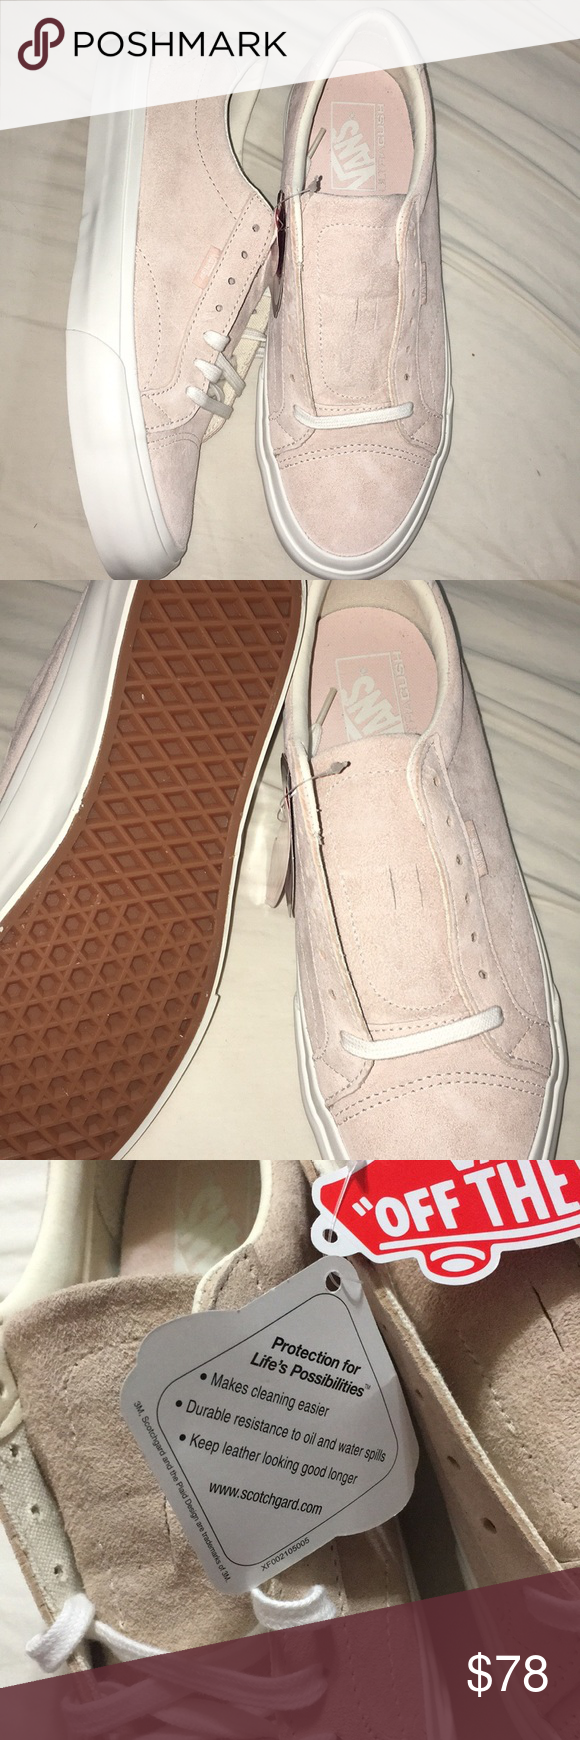 ca85060134 Baby pink and white with scotchgard Keeps leather looking good longer Men s  size 8.5 women s size 10 Vans Shoes Sneakers